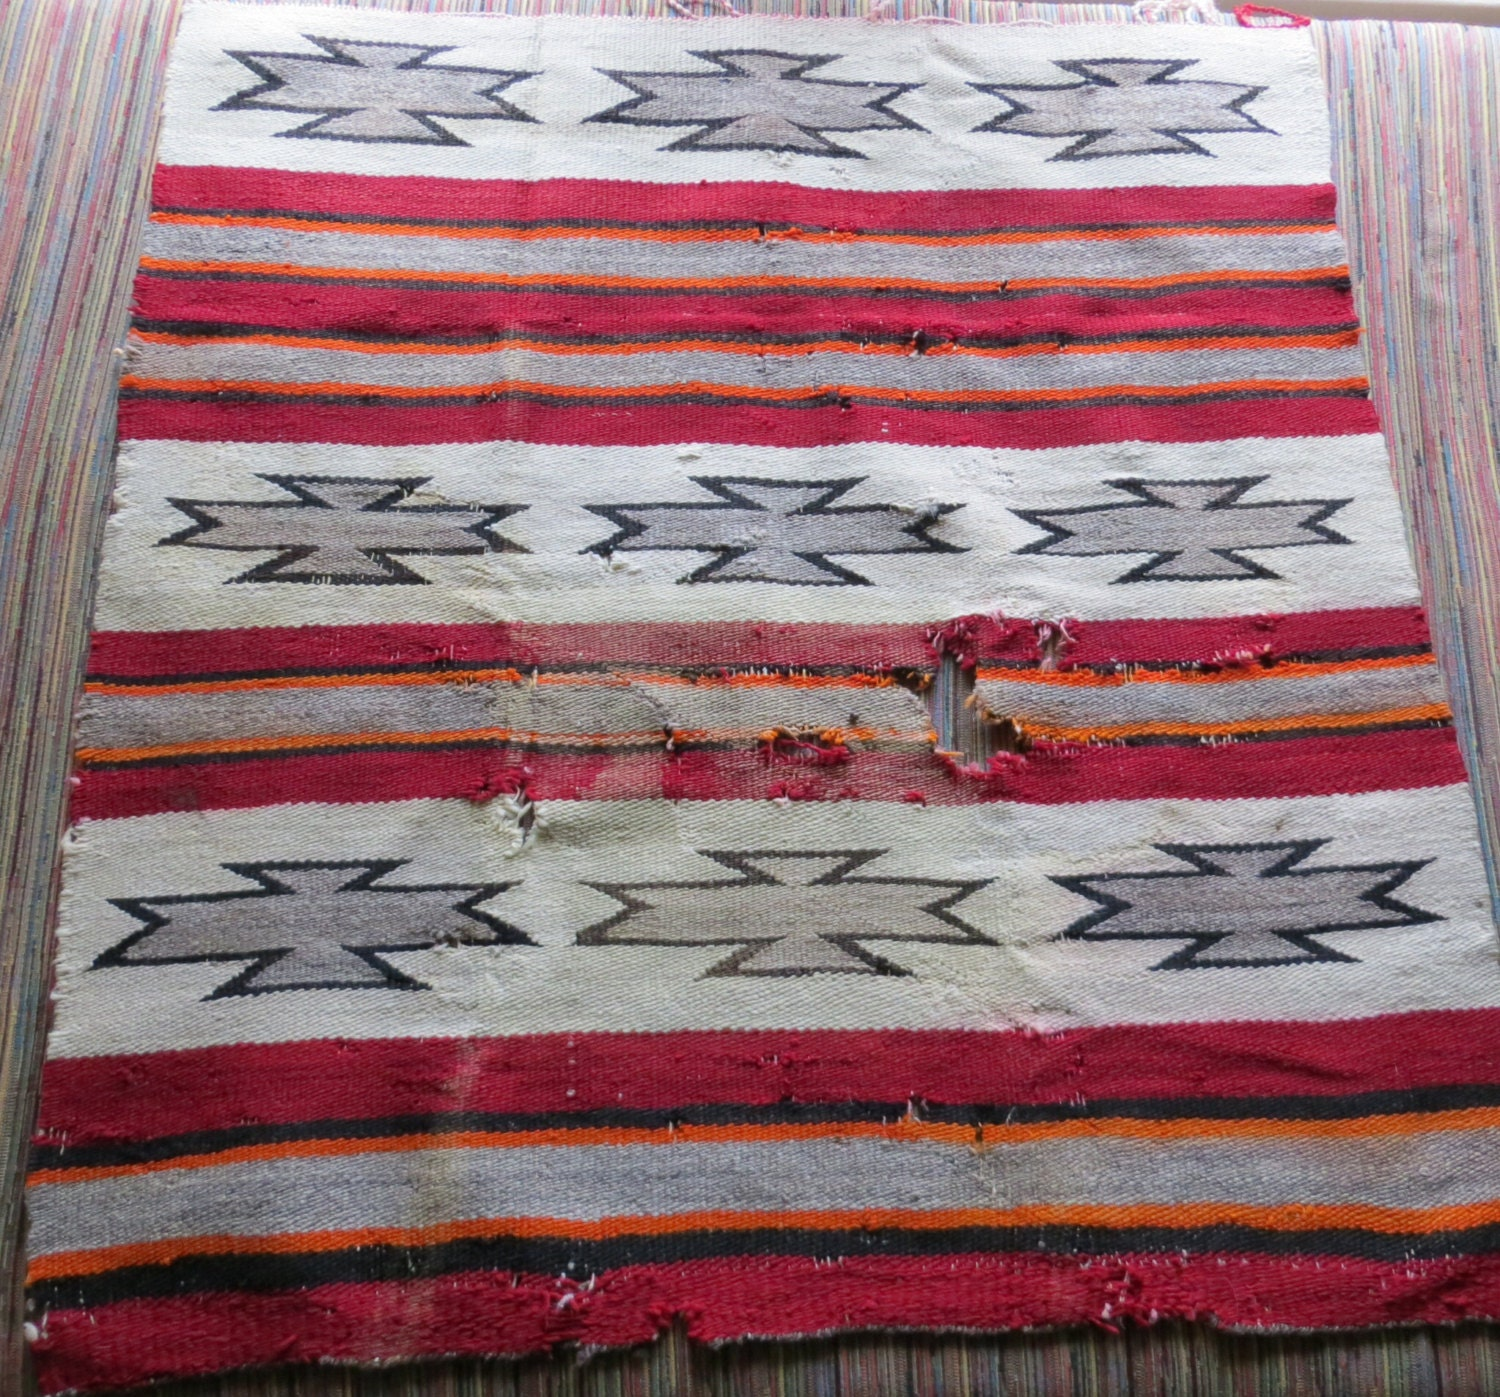 Early Antique Native American Indian Navajo Rug Or